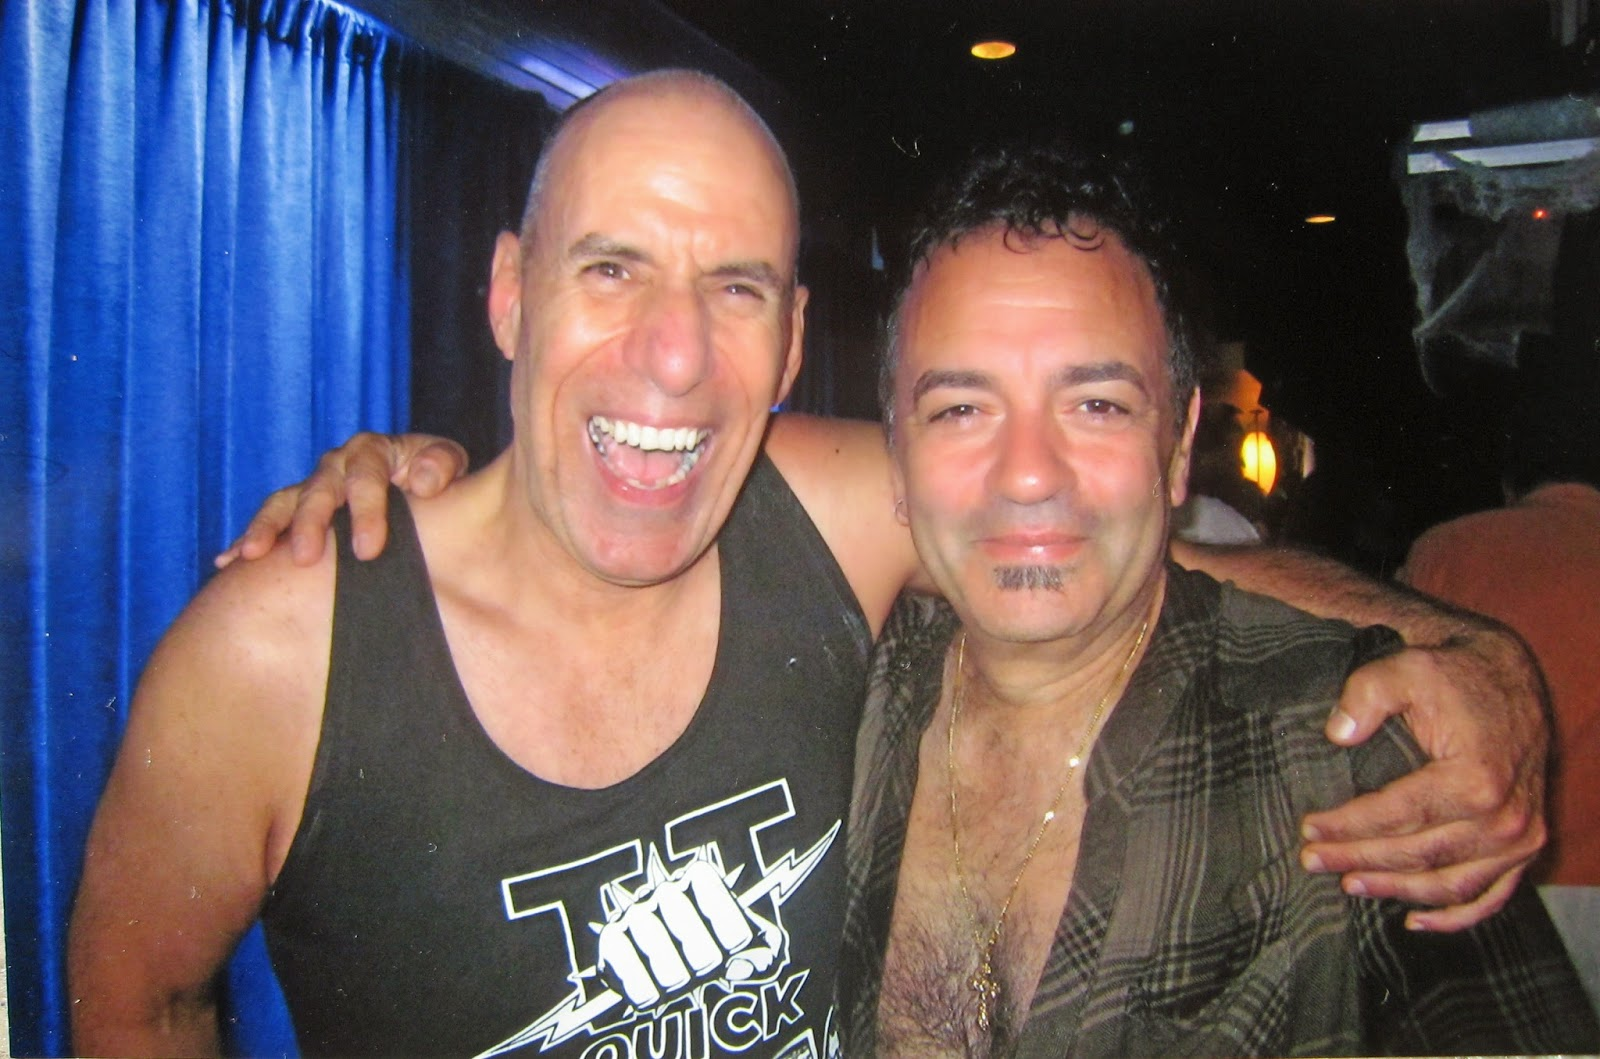 Tommy Mondello with Johnny Sing from Condor after their set... and yes there were many beers! Jenkinson's Circus Circus book release party October 18, 2014